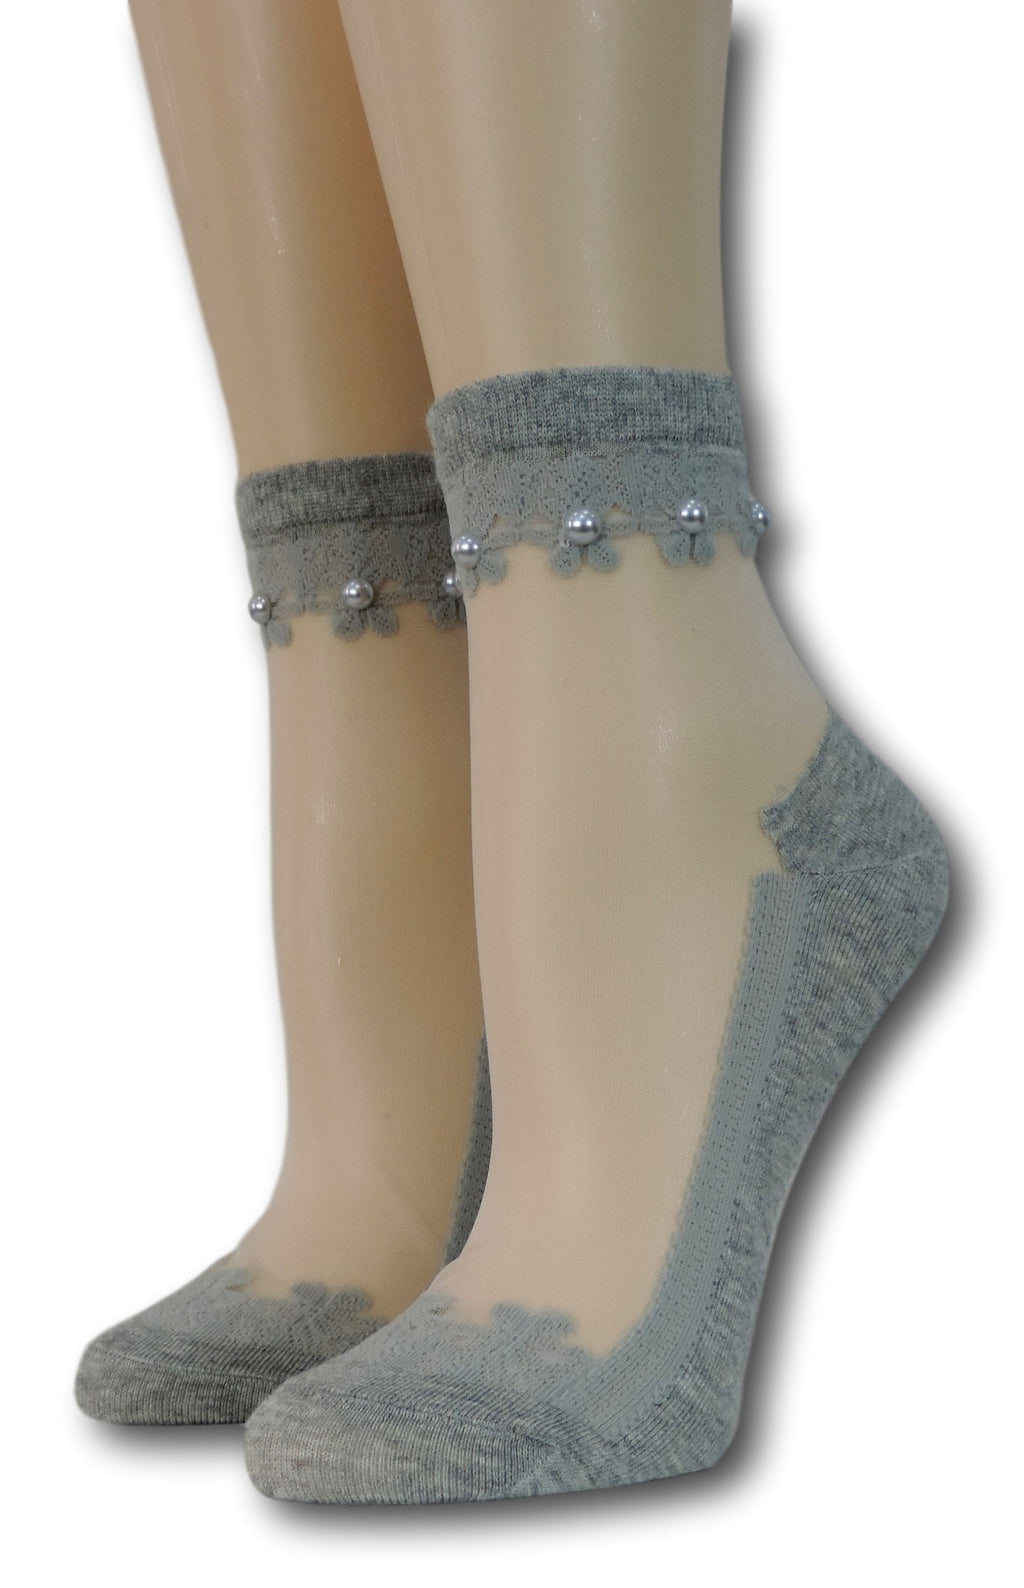 Grey Elegant Sheer Socks with beads